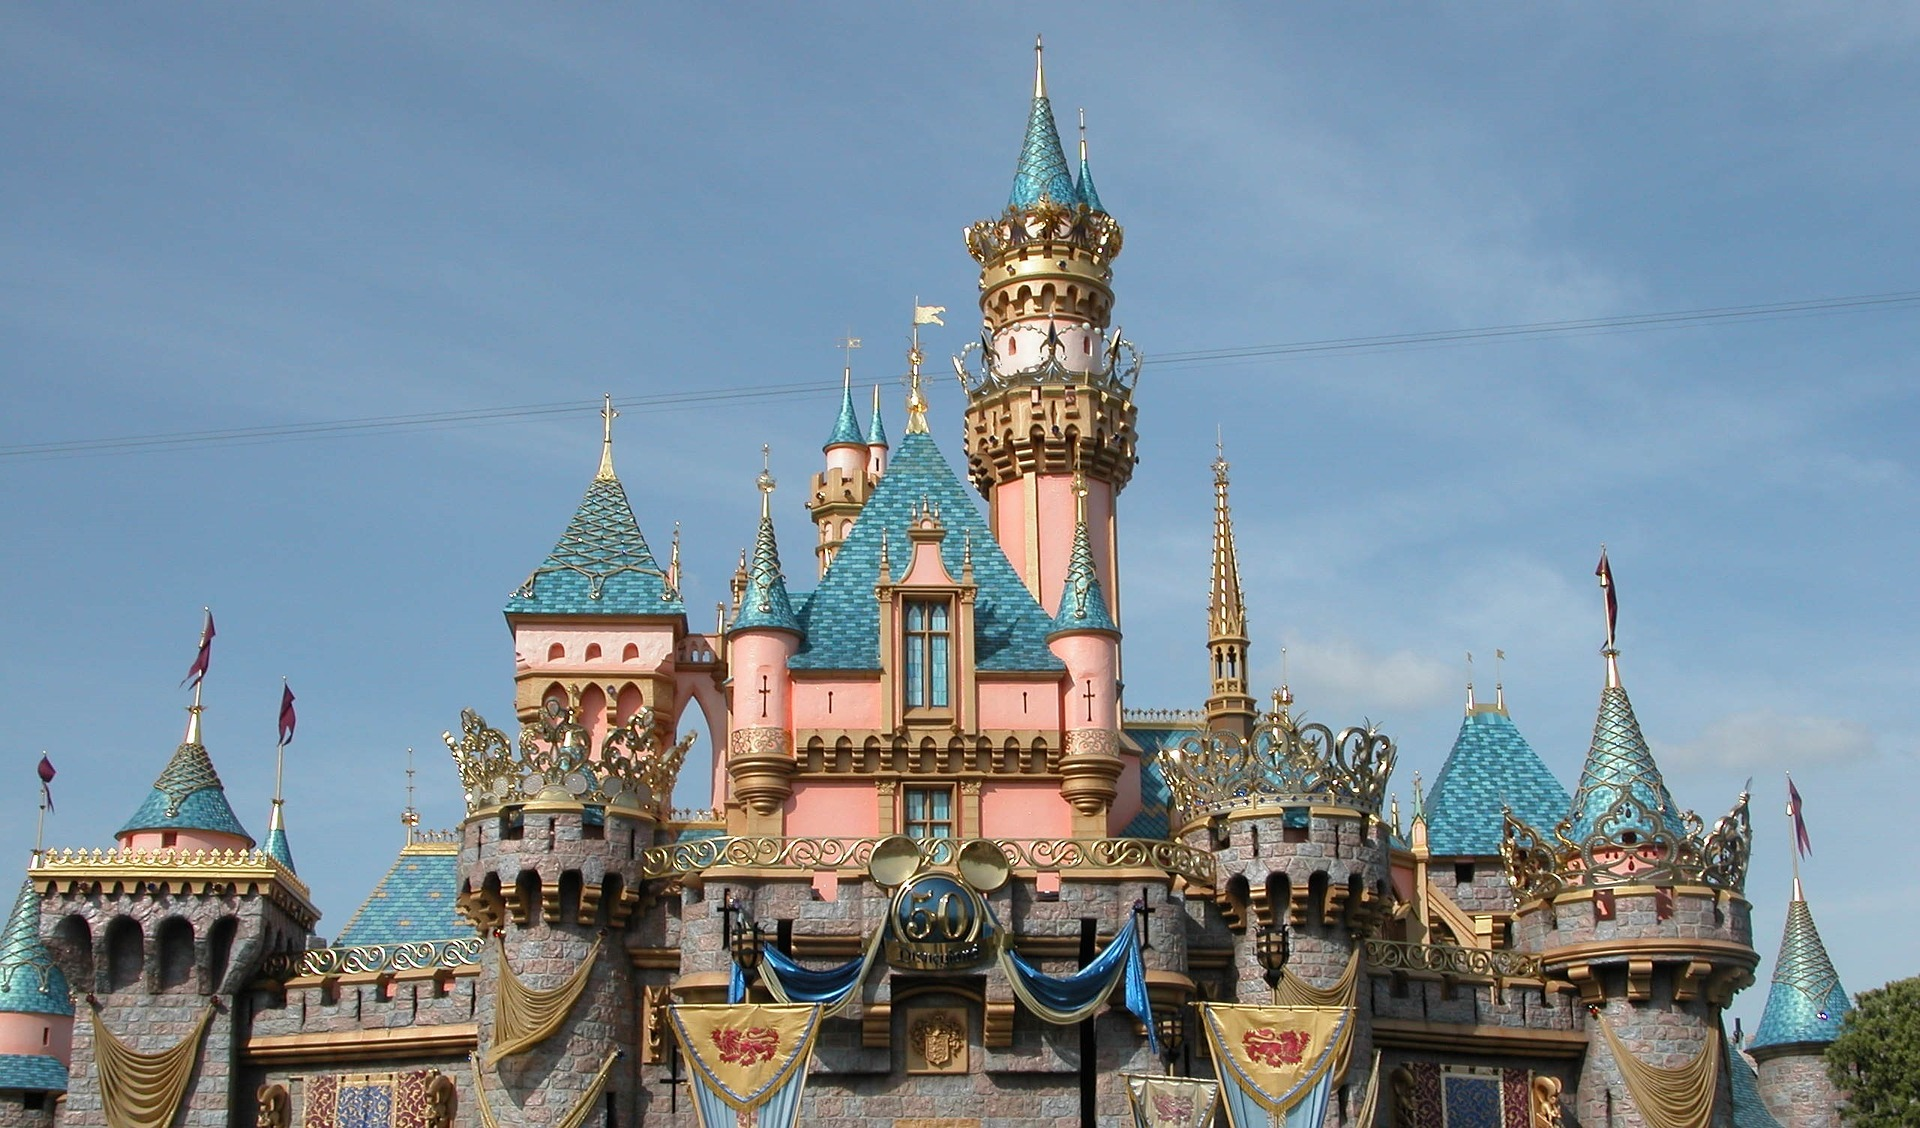 Sleeping Beauty Castle, Disneyland, Anaheim, California